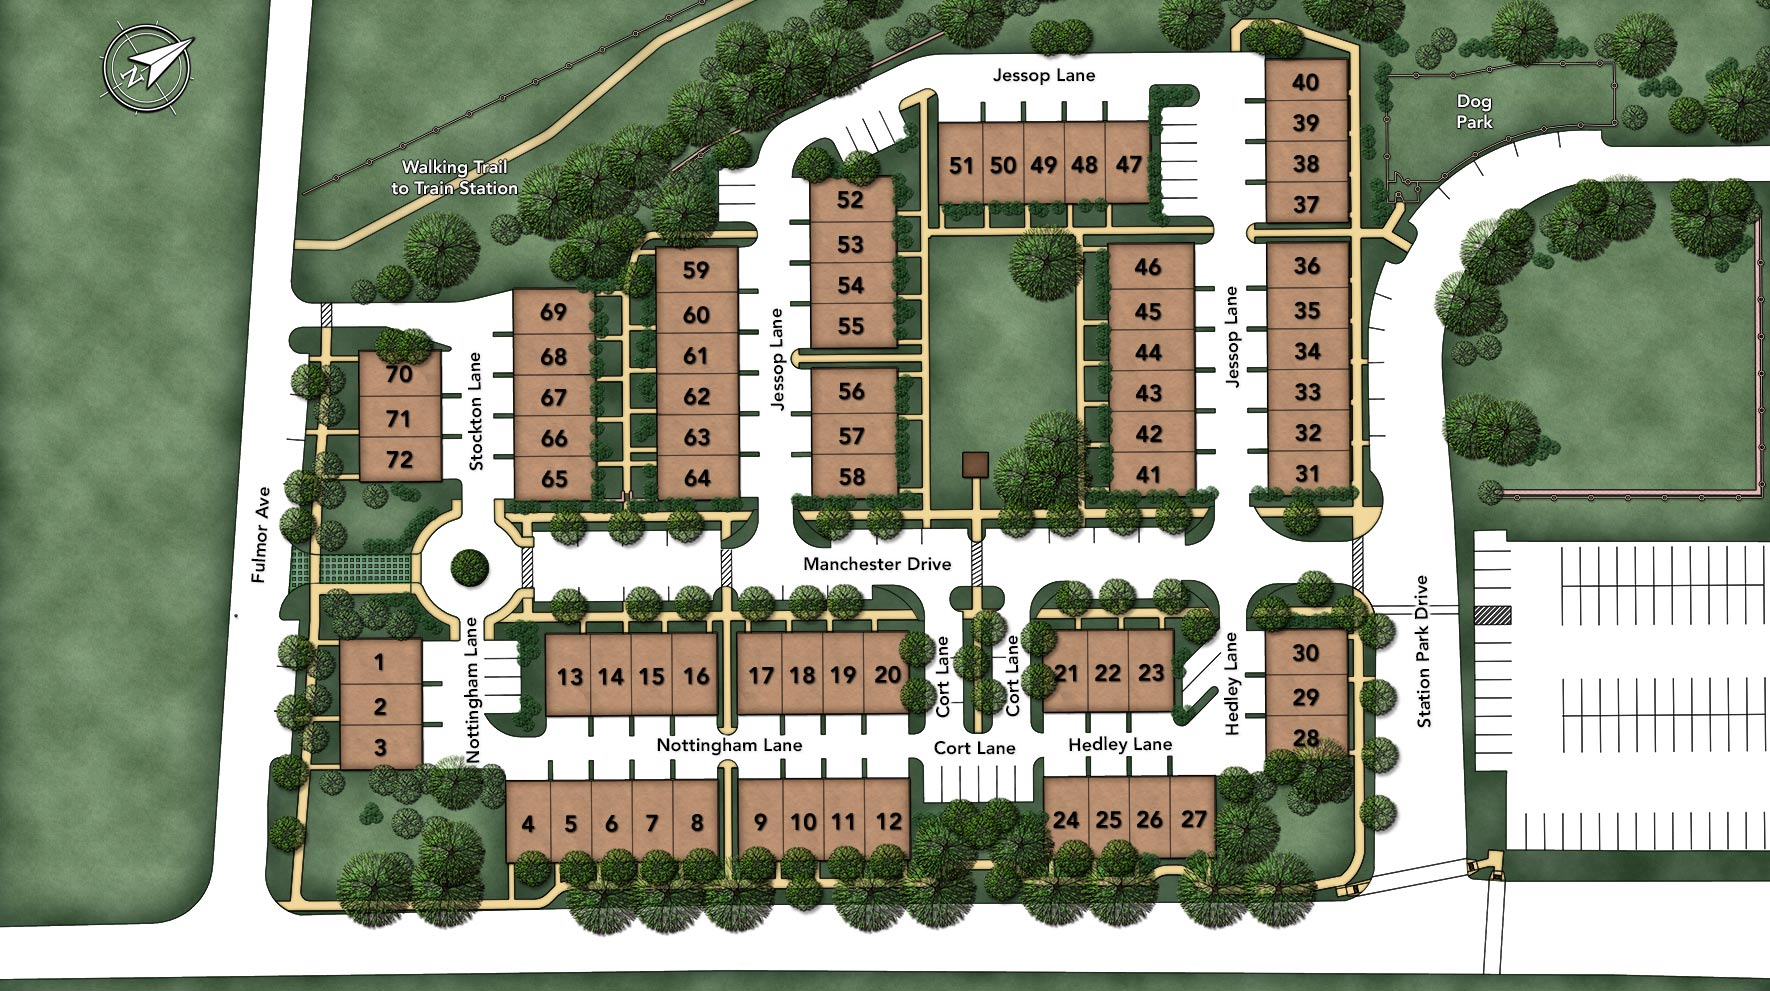 Hatboro Station Overall Site Plan